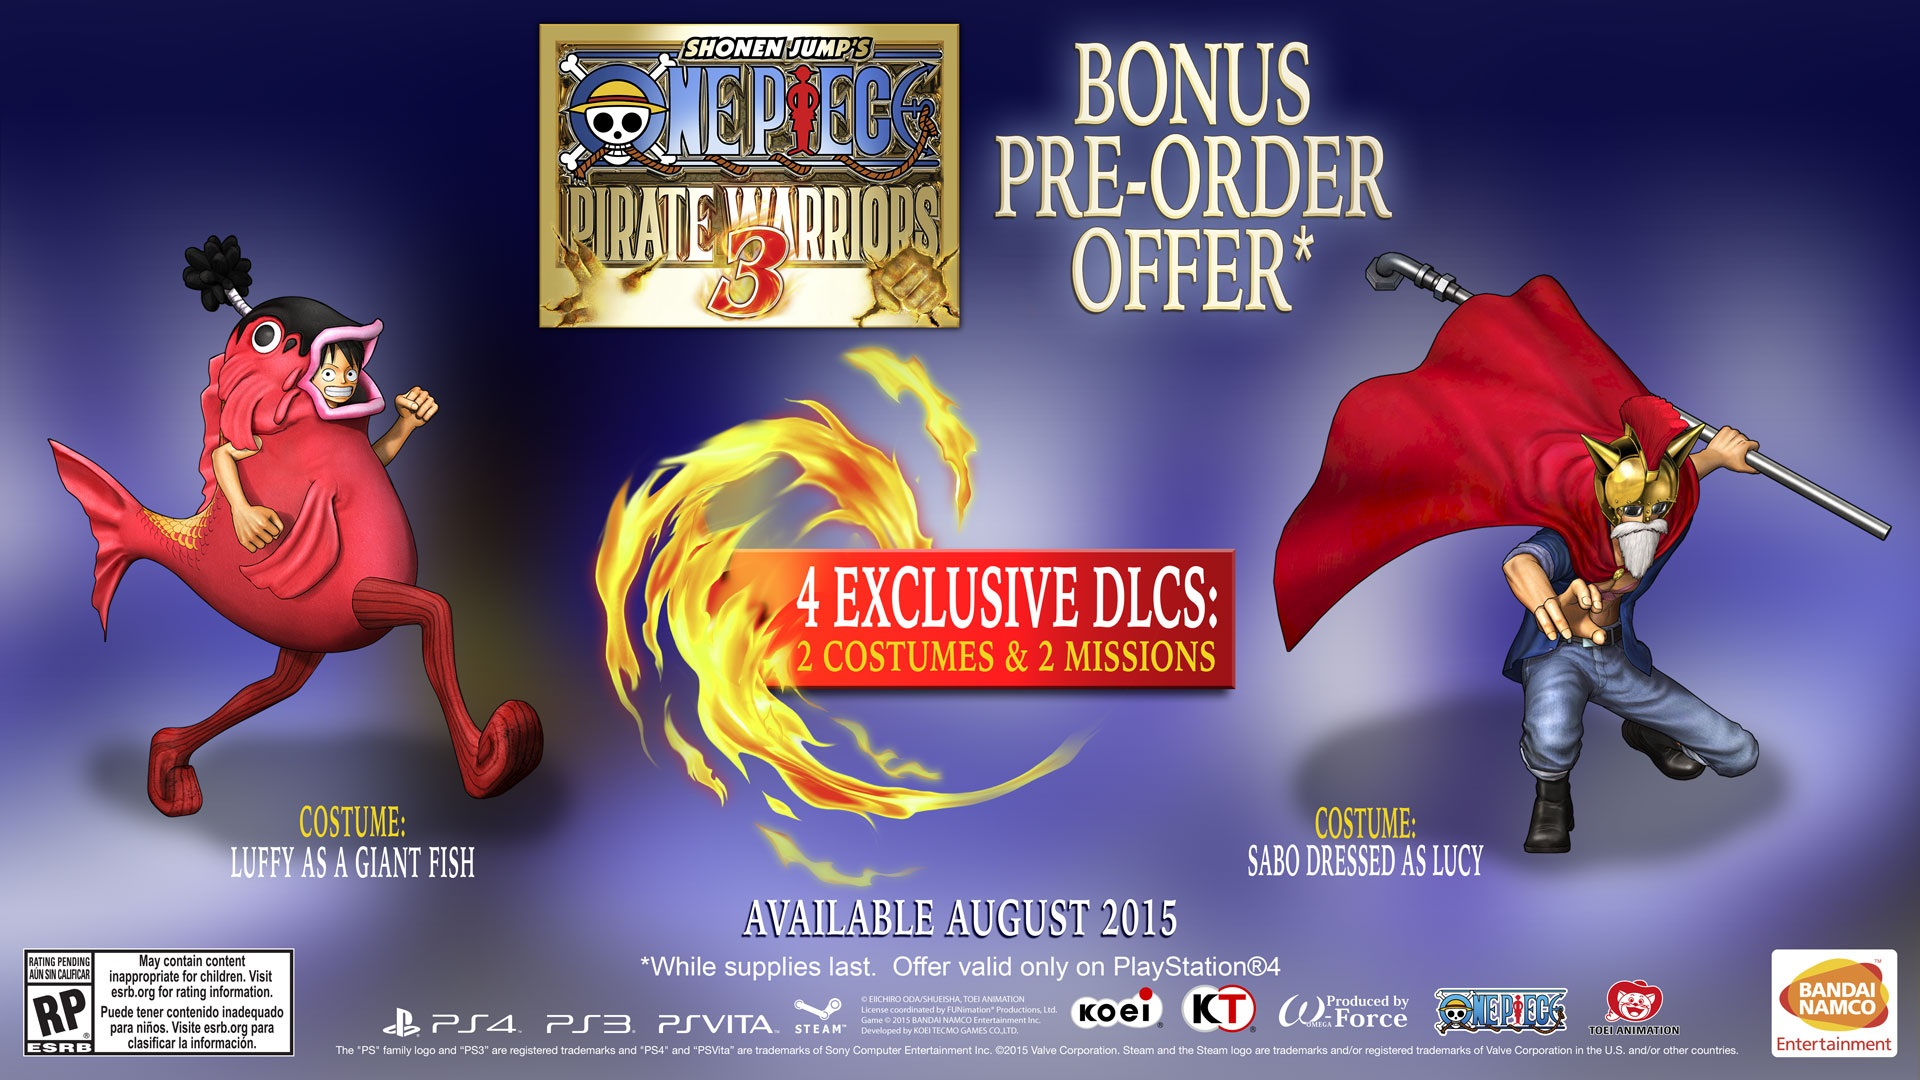 One Piece: Pirate Warriors 3 Trailer and Pre-Order Offer Revealed Post Header